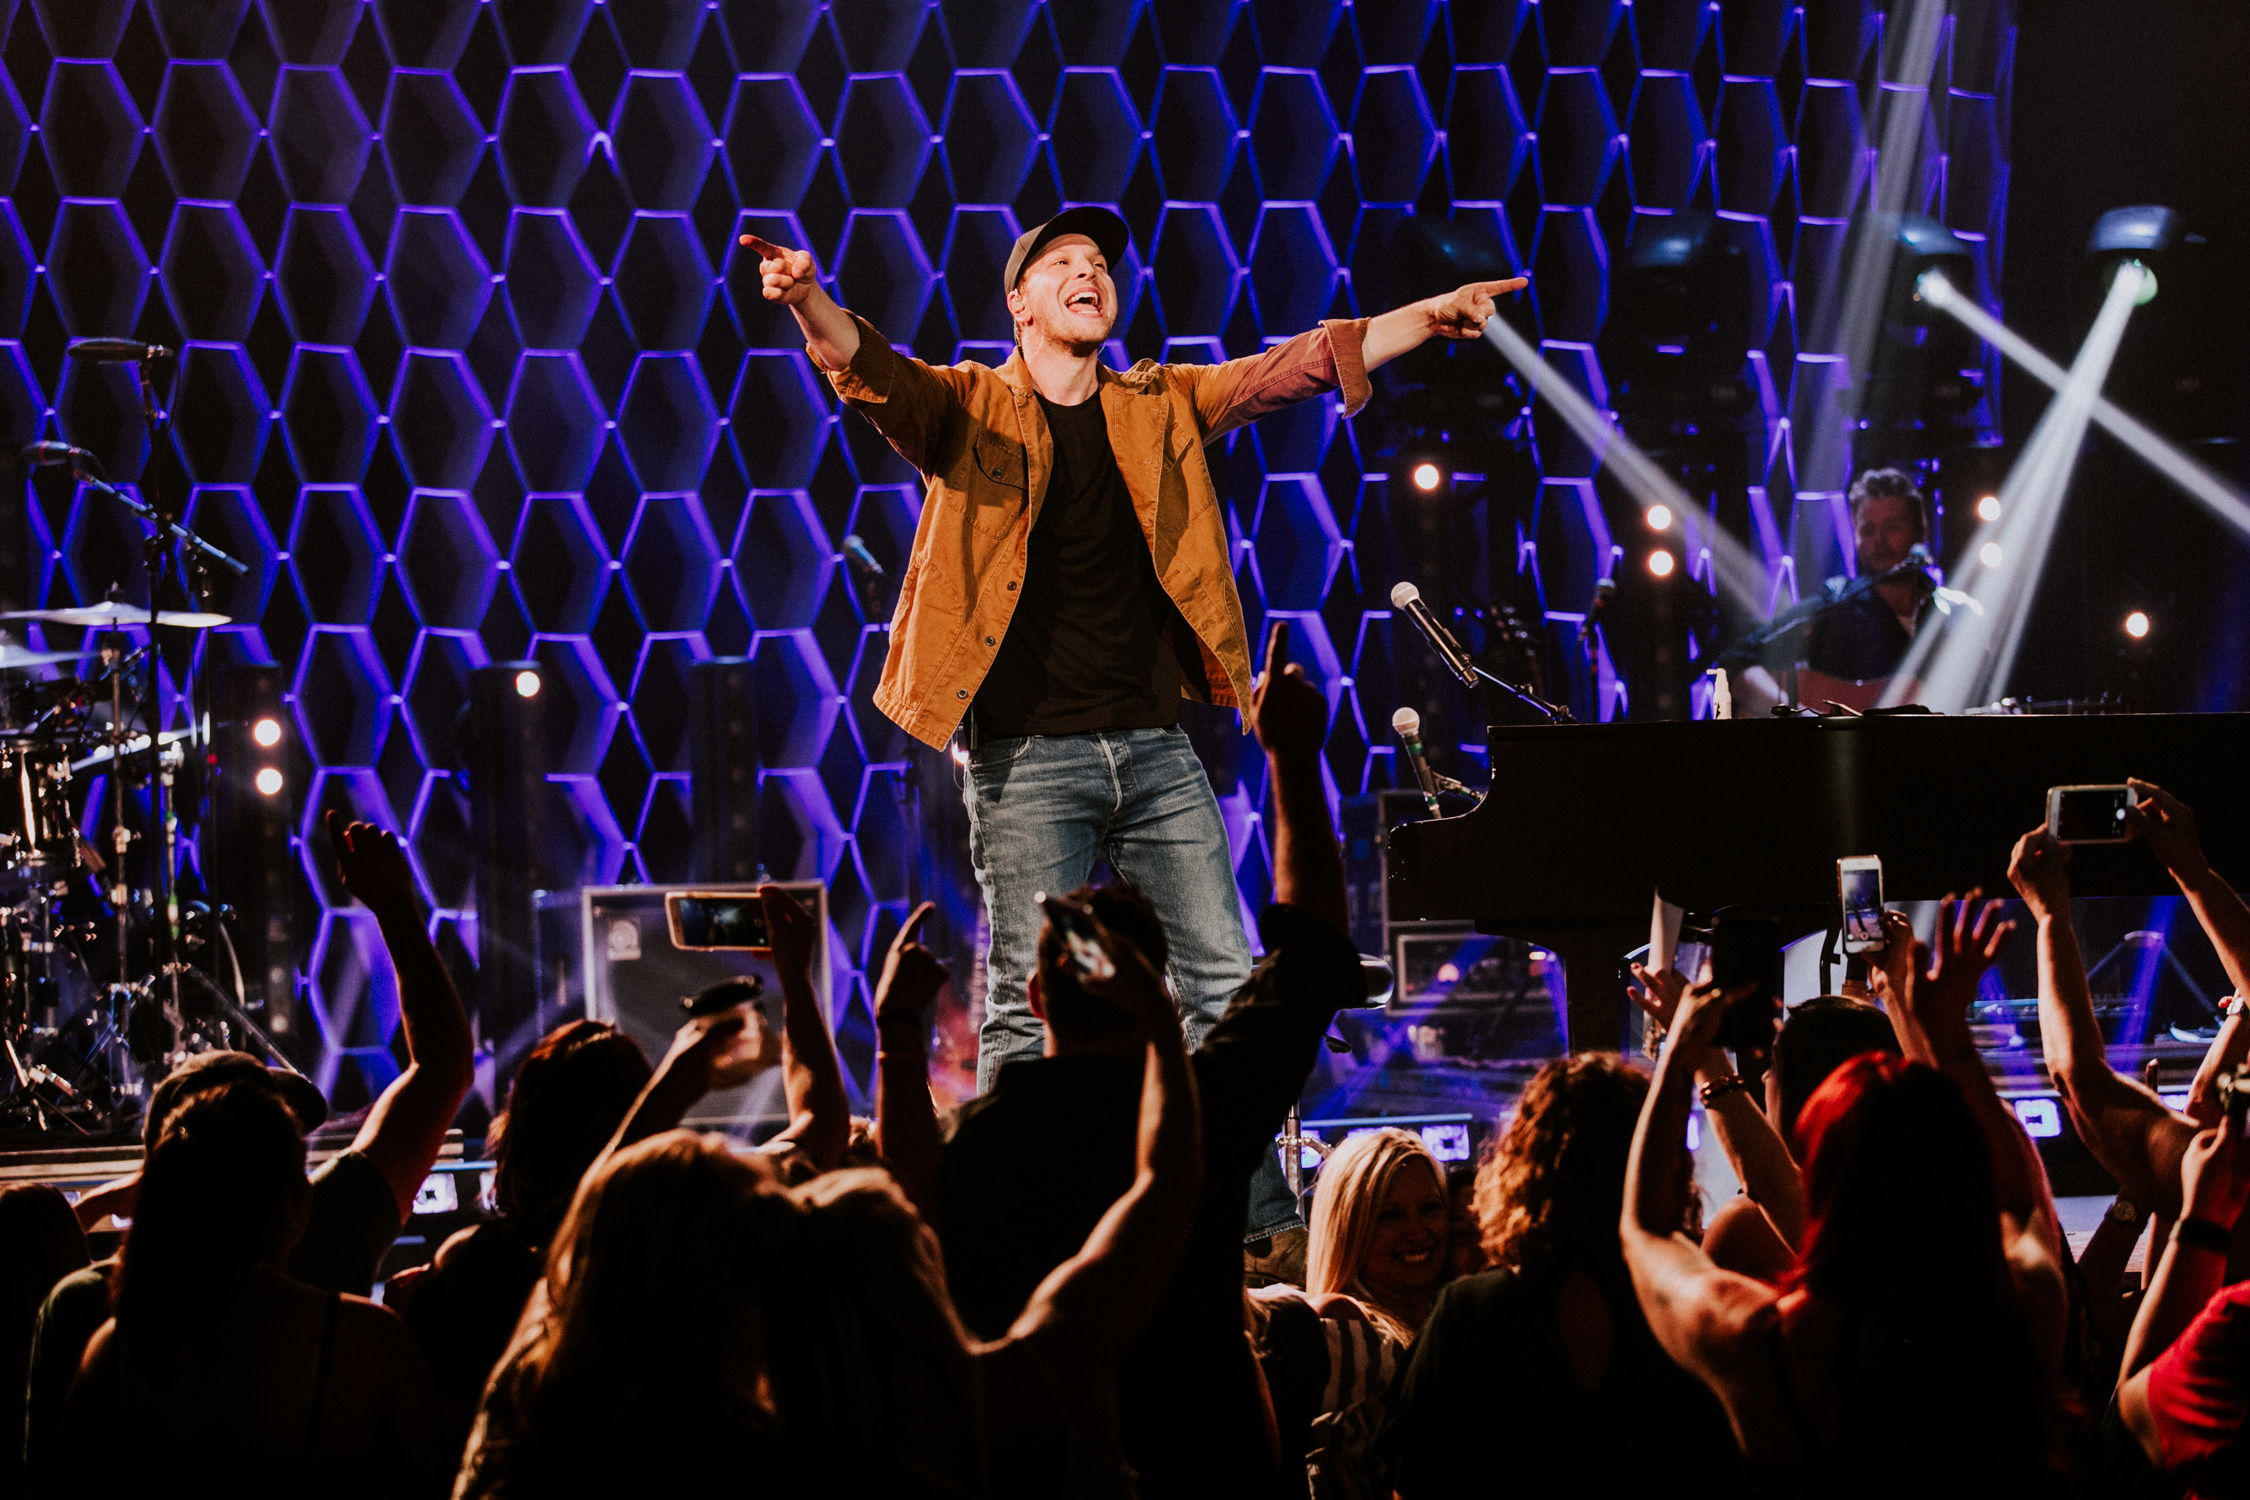 gavin-degraw-concert-crowd-hands-up-AnnaLeeMedia